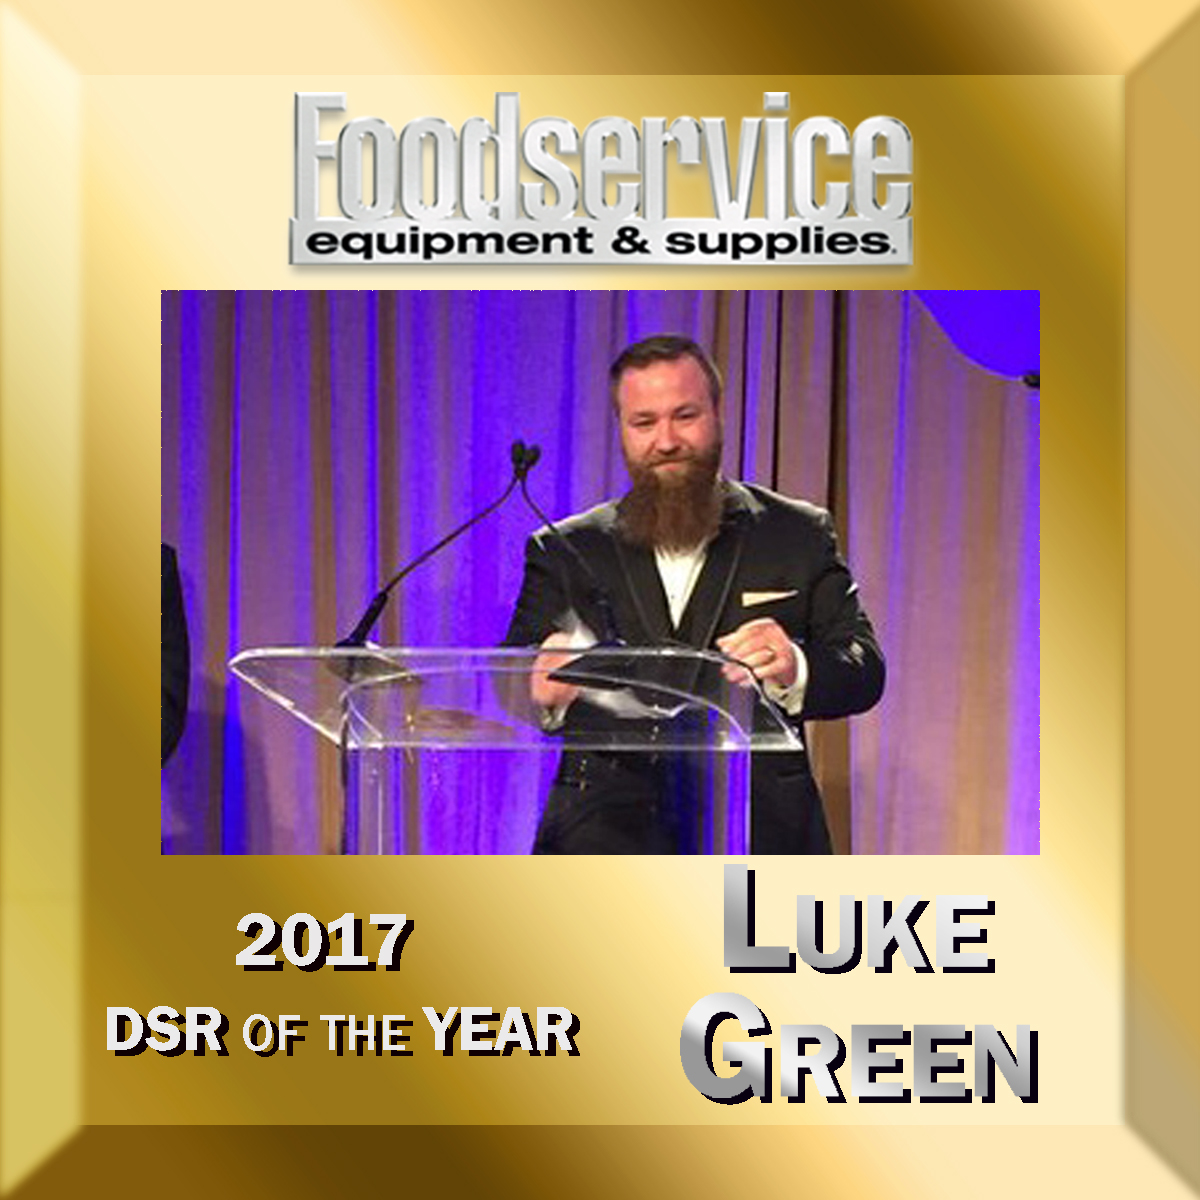 Luke Green DSR of the Year 2017